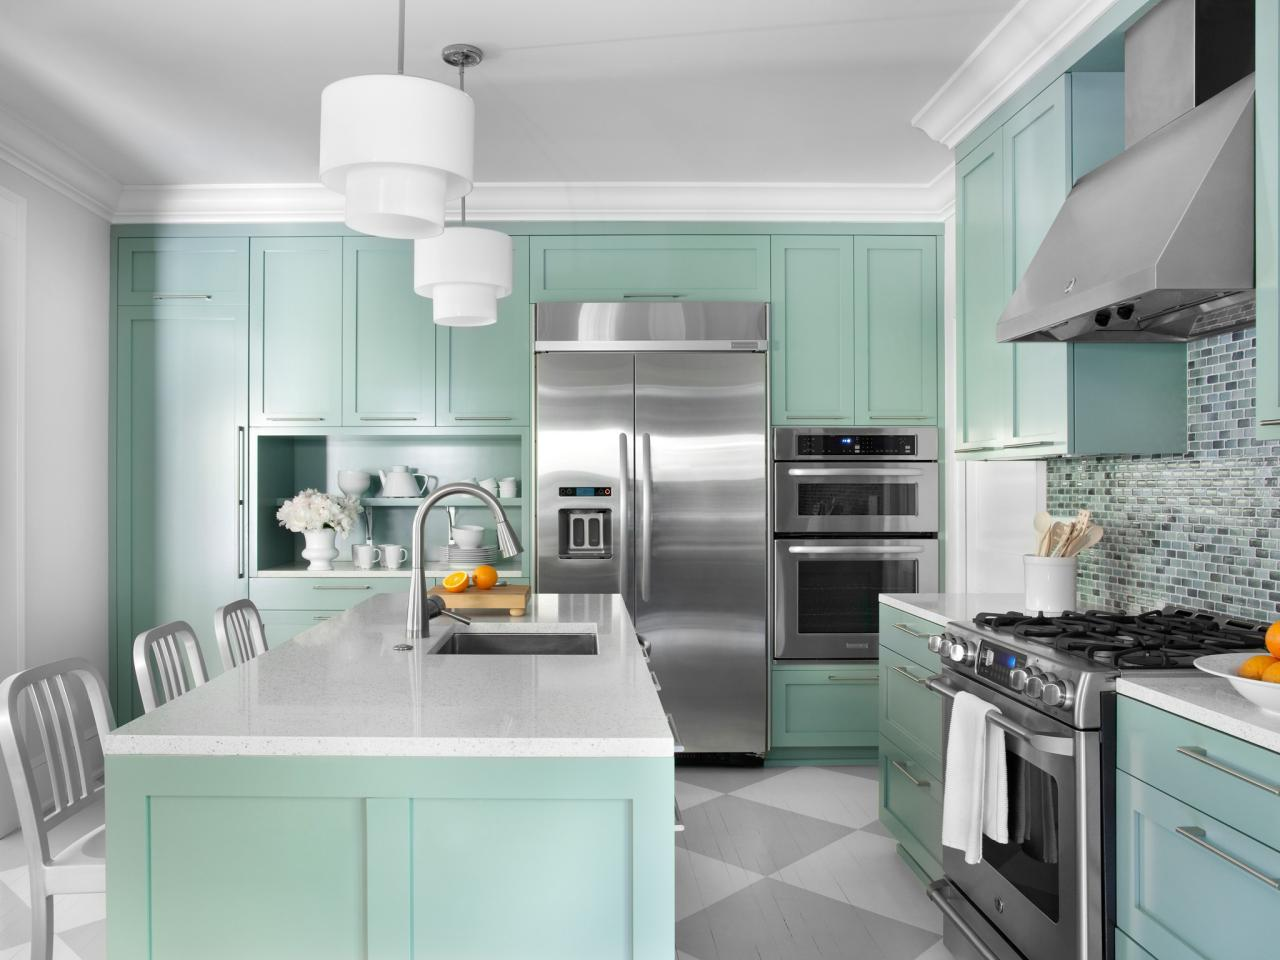 White Countertops With Turquoise Green Cabinets dwellingdecor